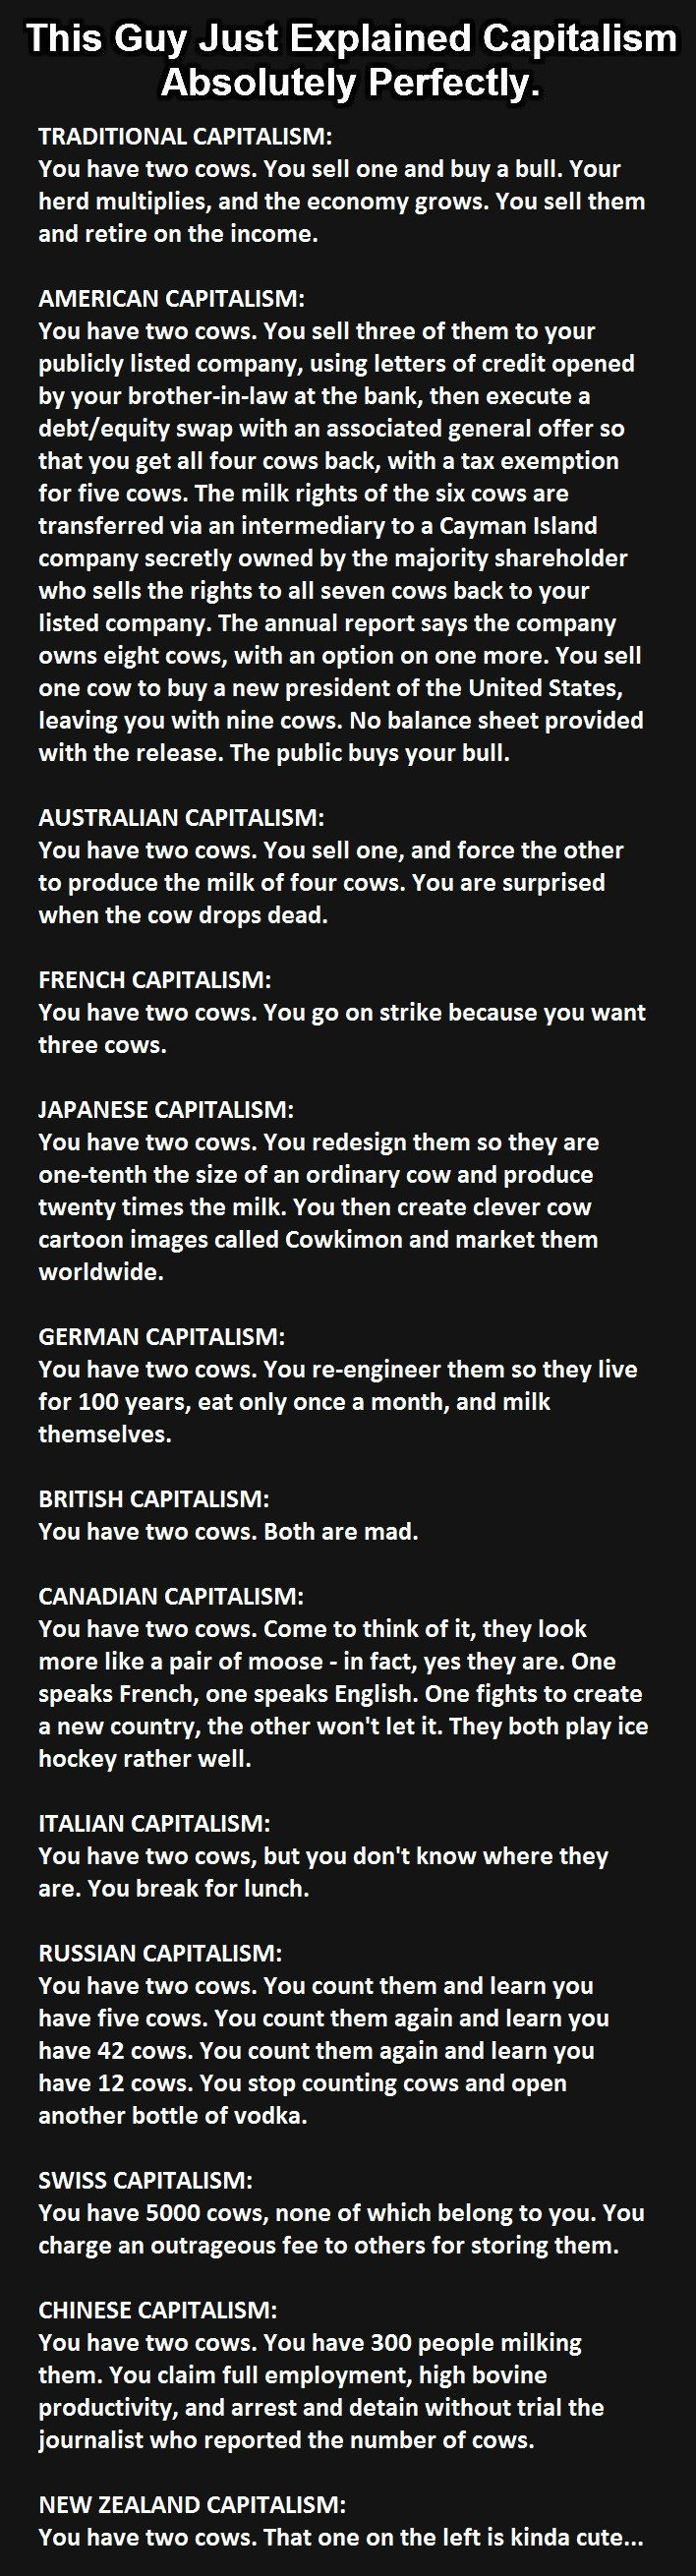 capitolism-explained